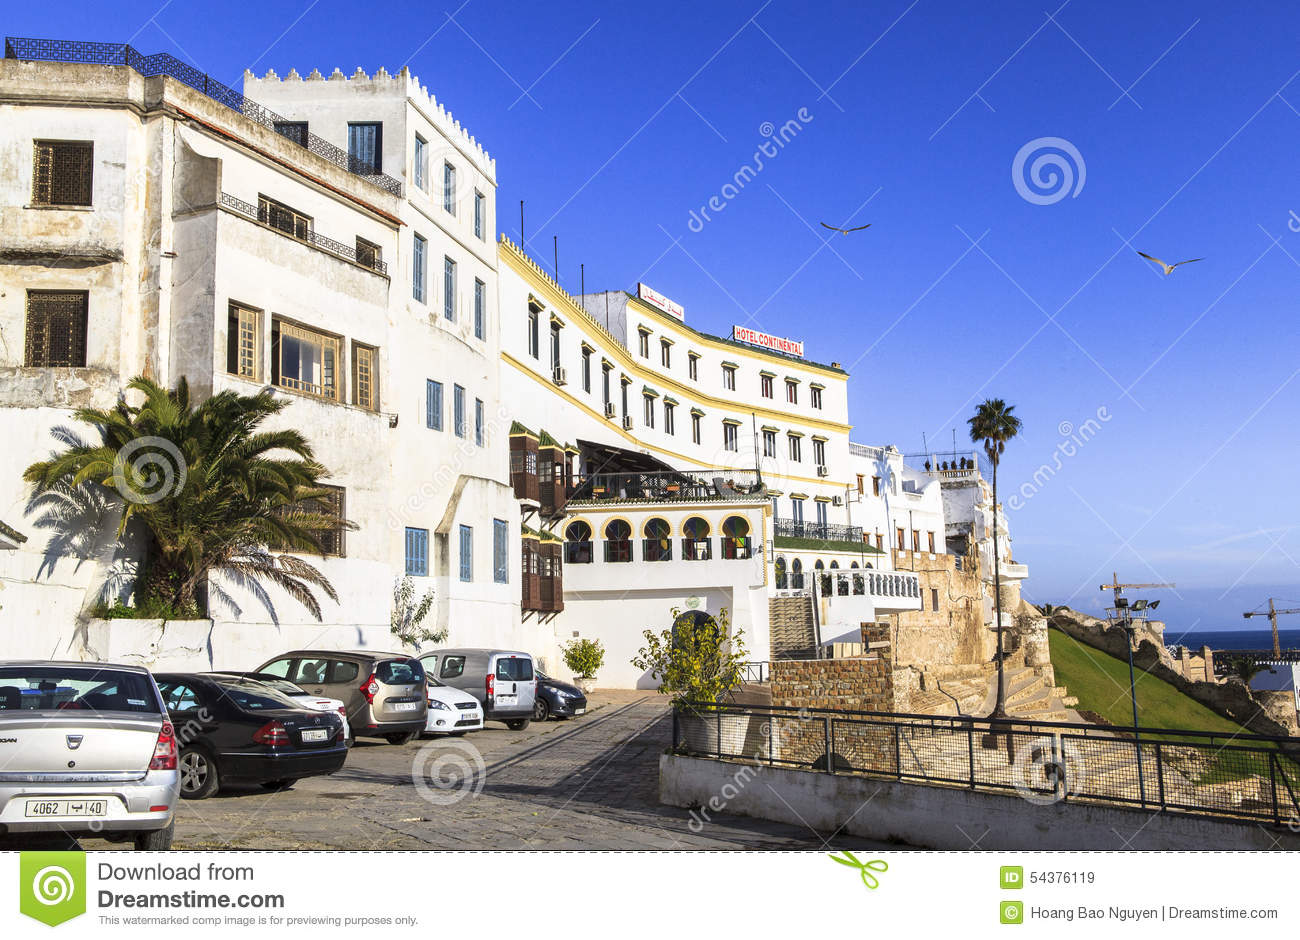 Hotel continental in chefchaouen morocco editorial stock for Continental centre hotel